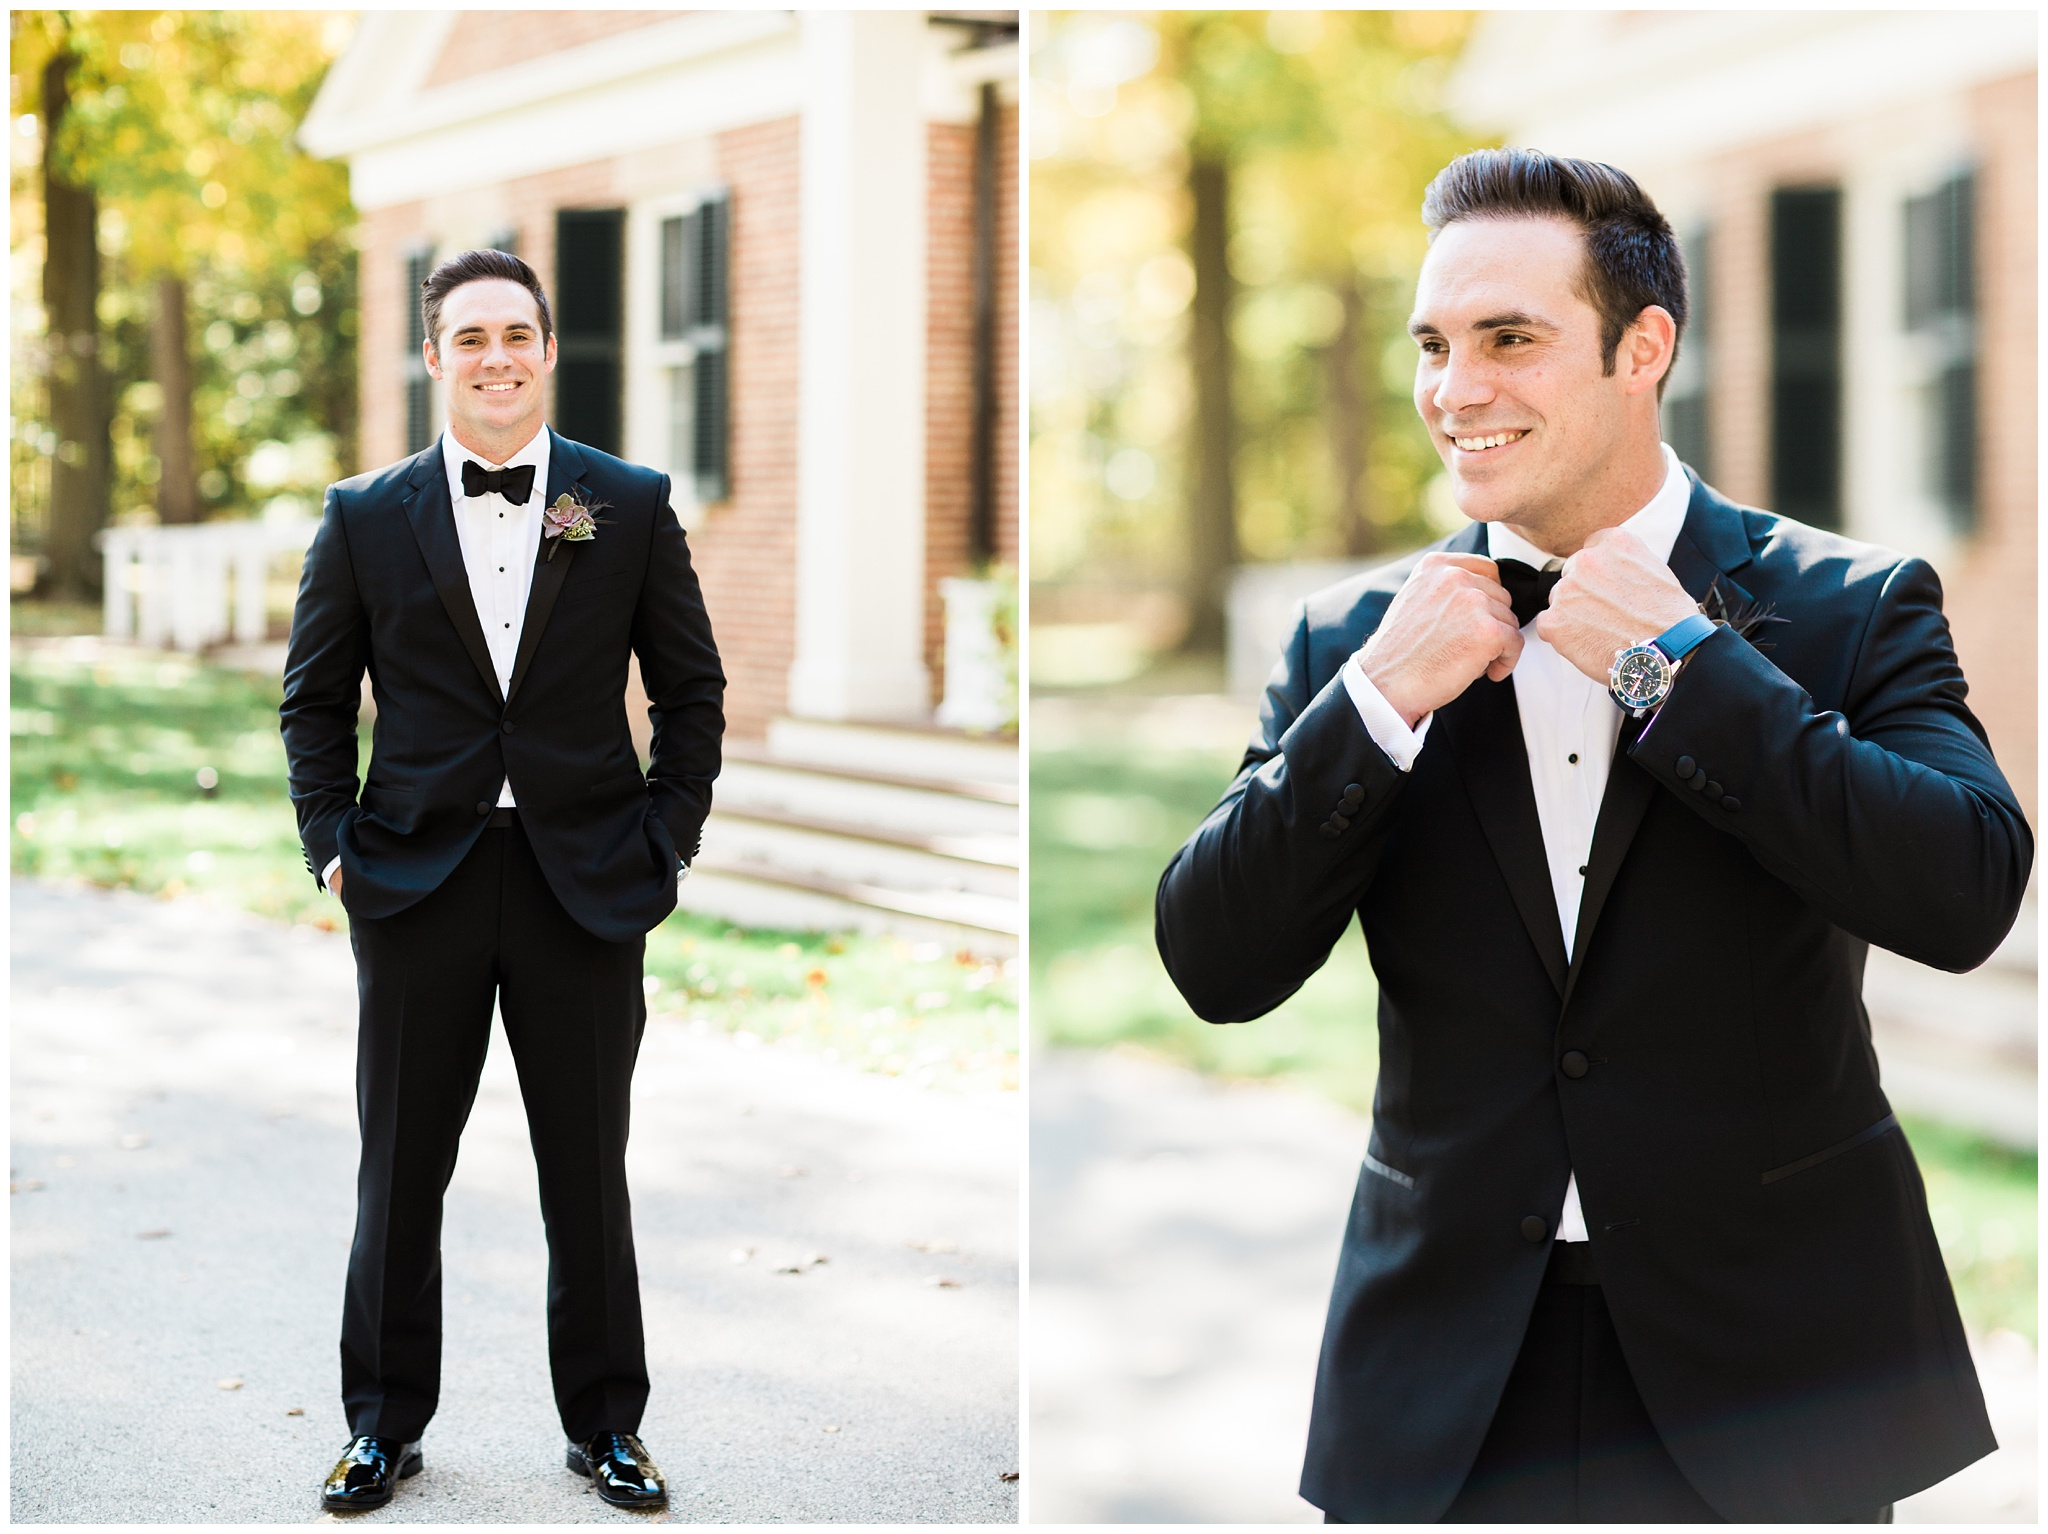 RebeccaHaleyPhotography_BarringtonPhotographer_ChicagoPhotographer_ChicagoWedding_0045.jpg